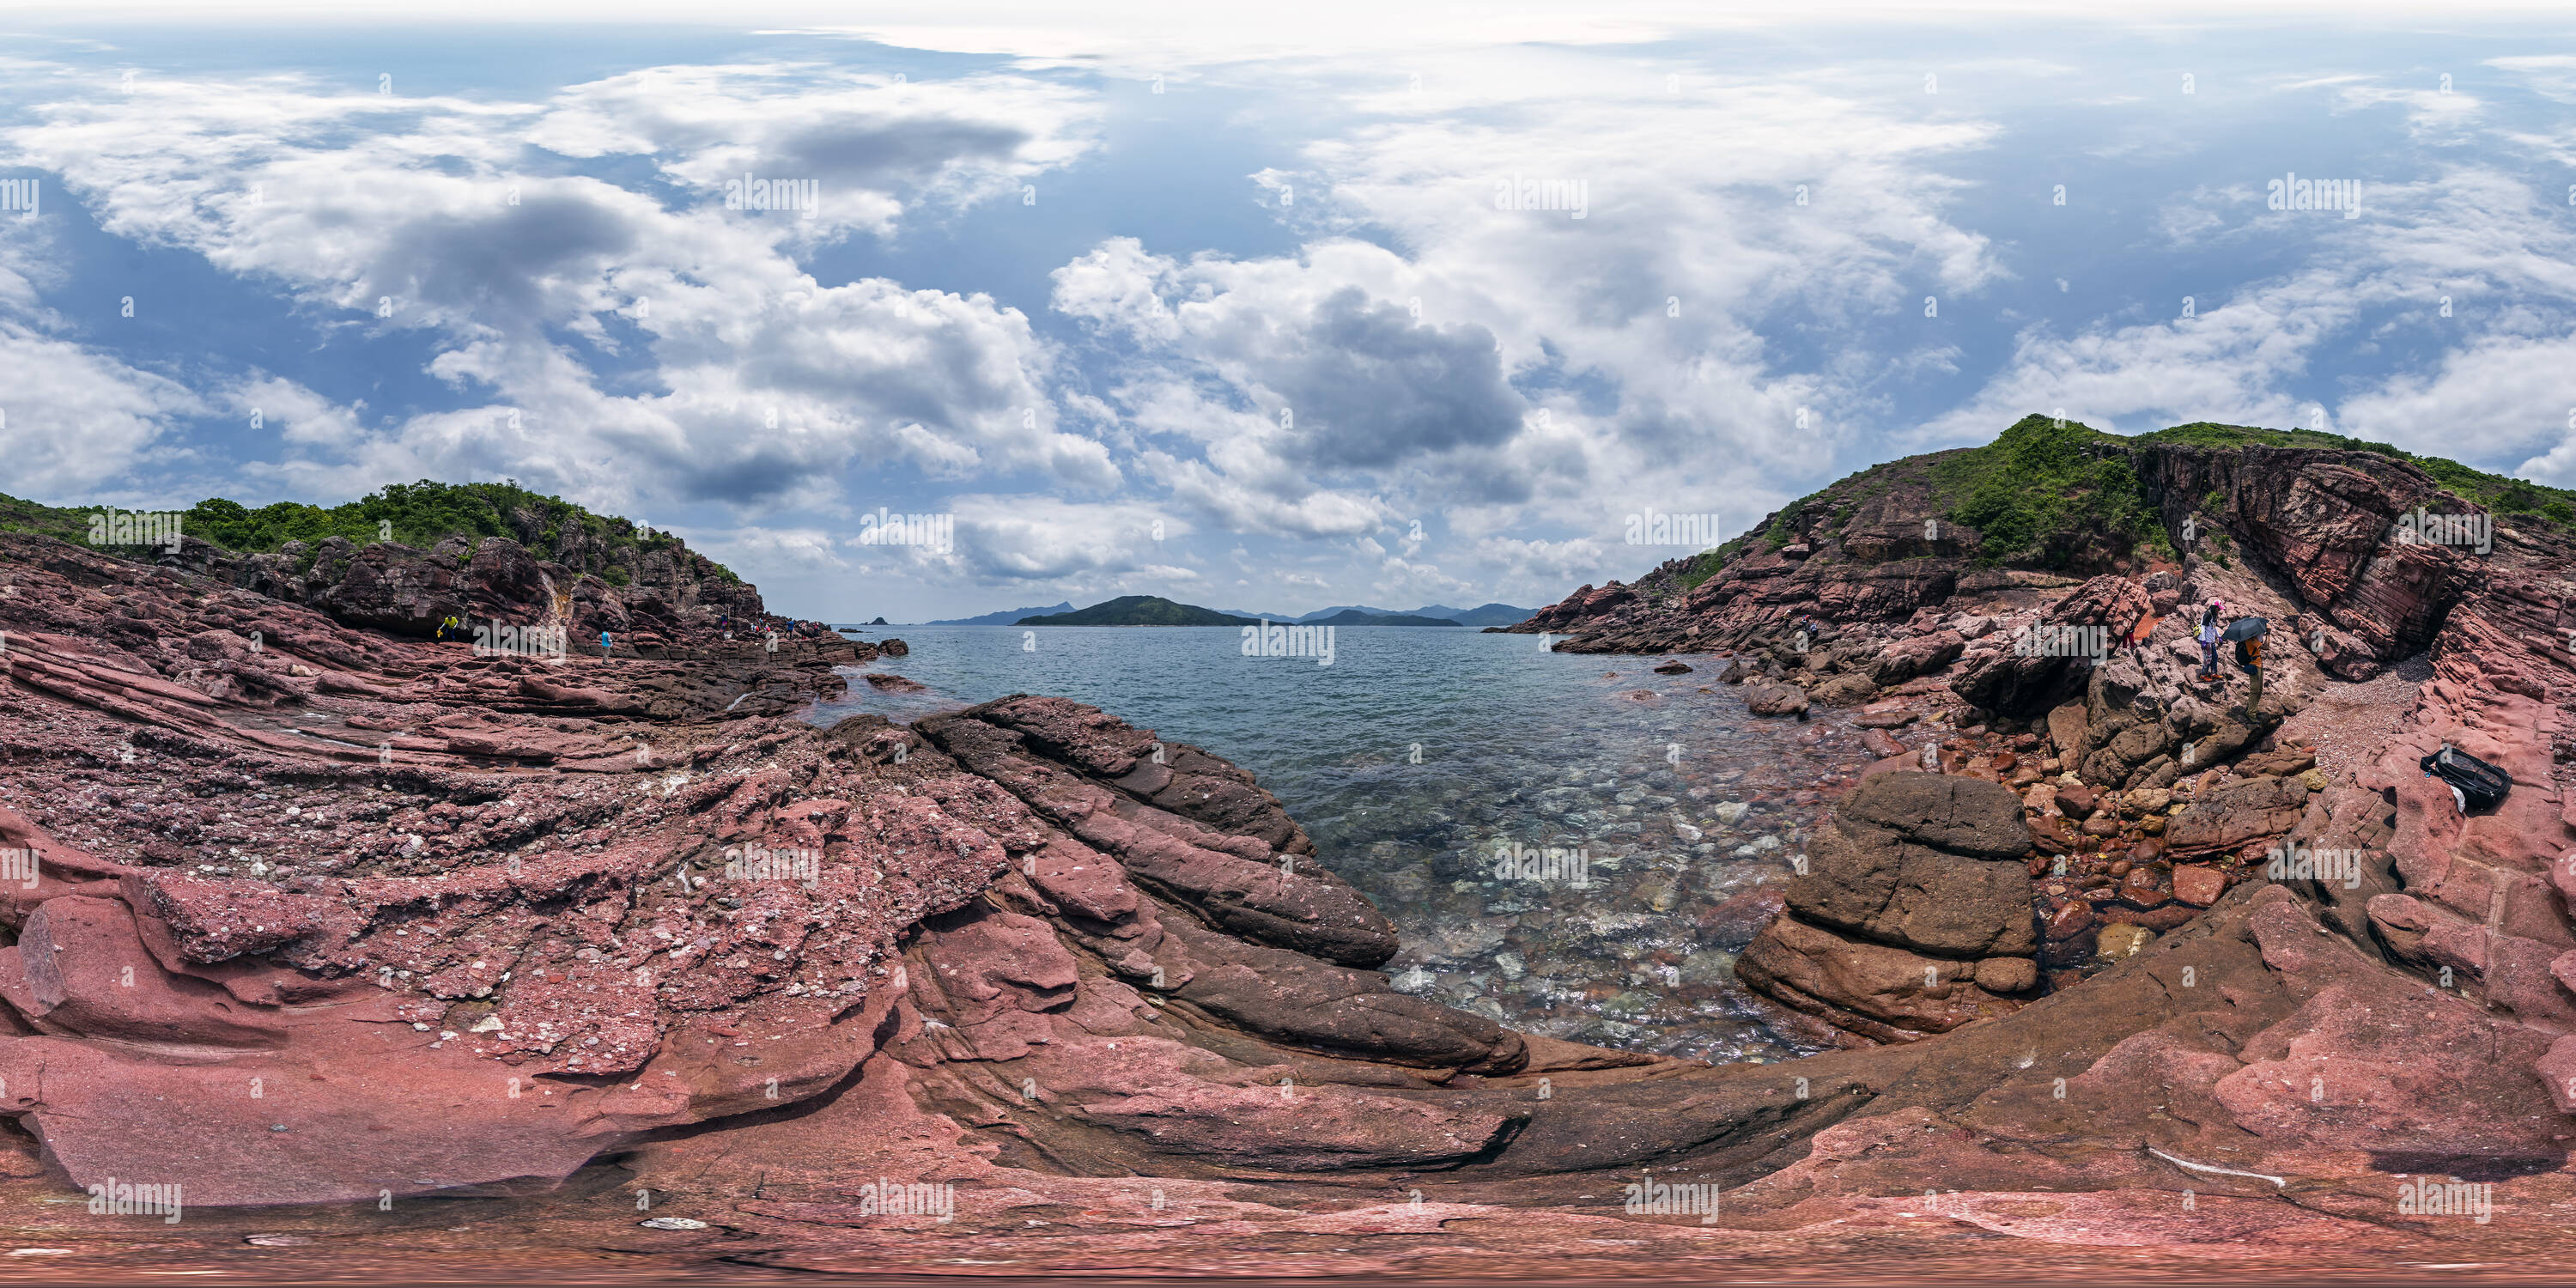 Mars Paradise(赤洲火星樂園千層壁), l'île de Port, HK Geopark. Photo Stock